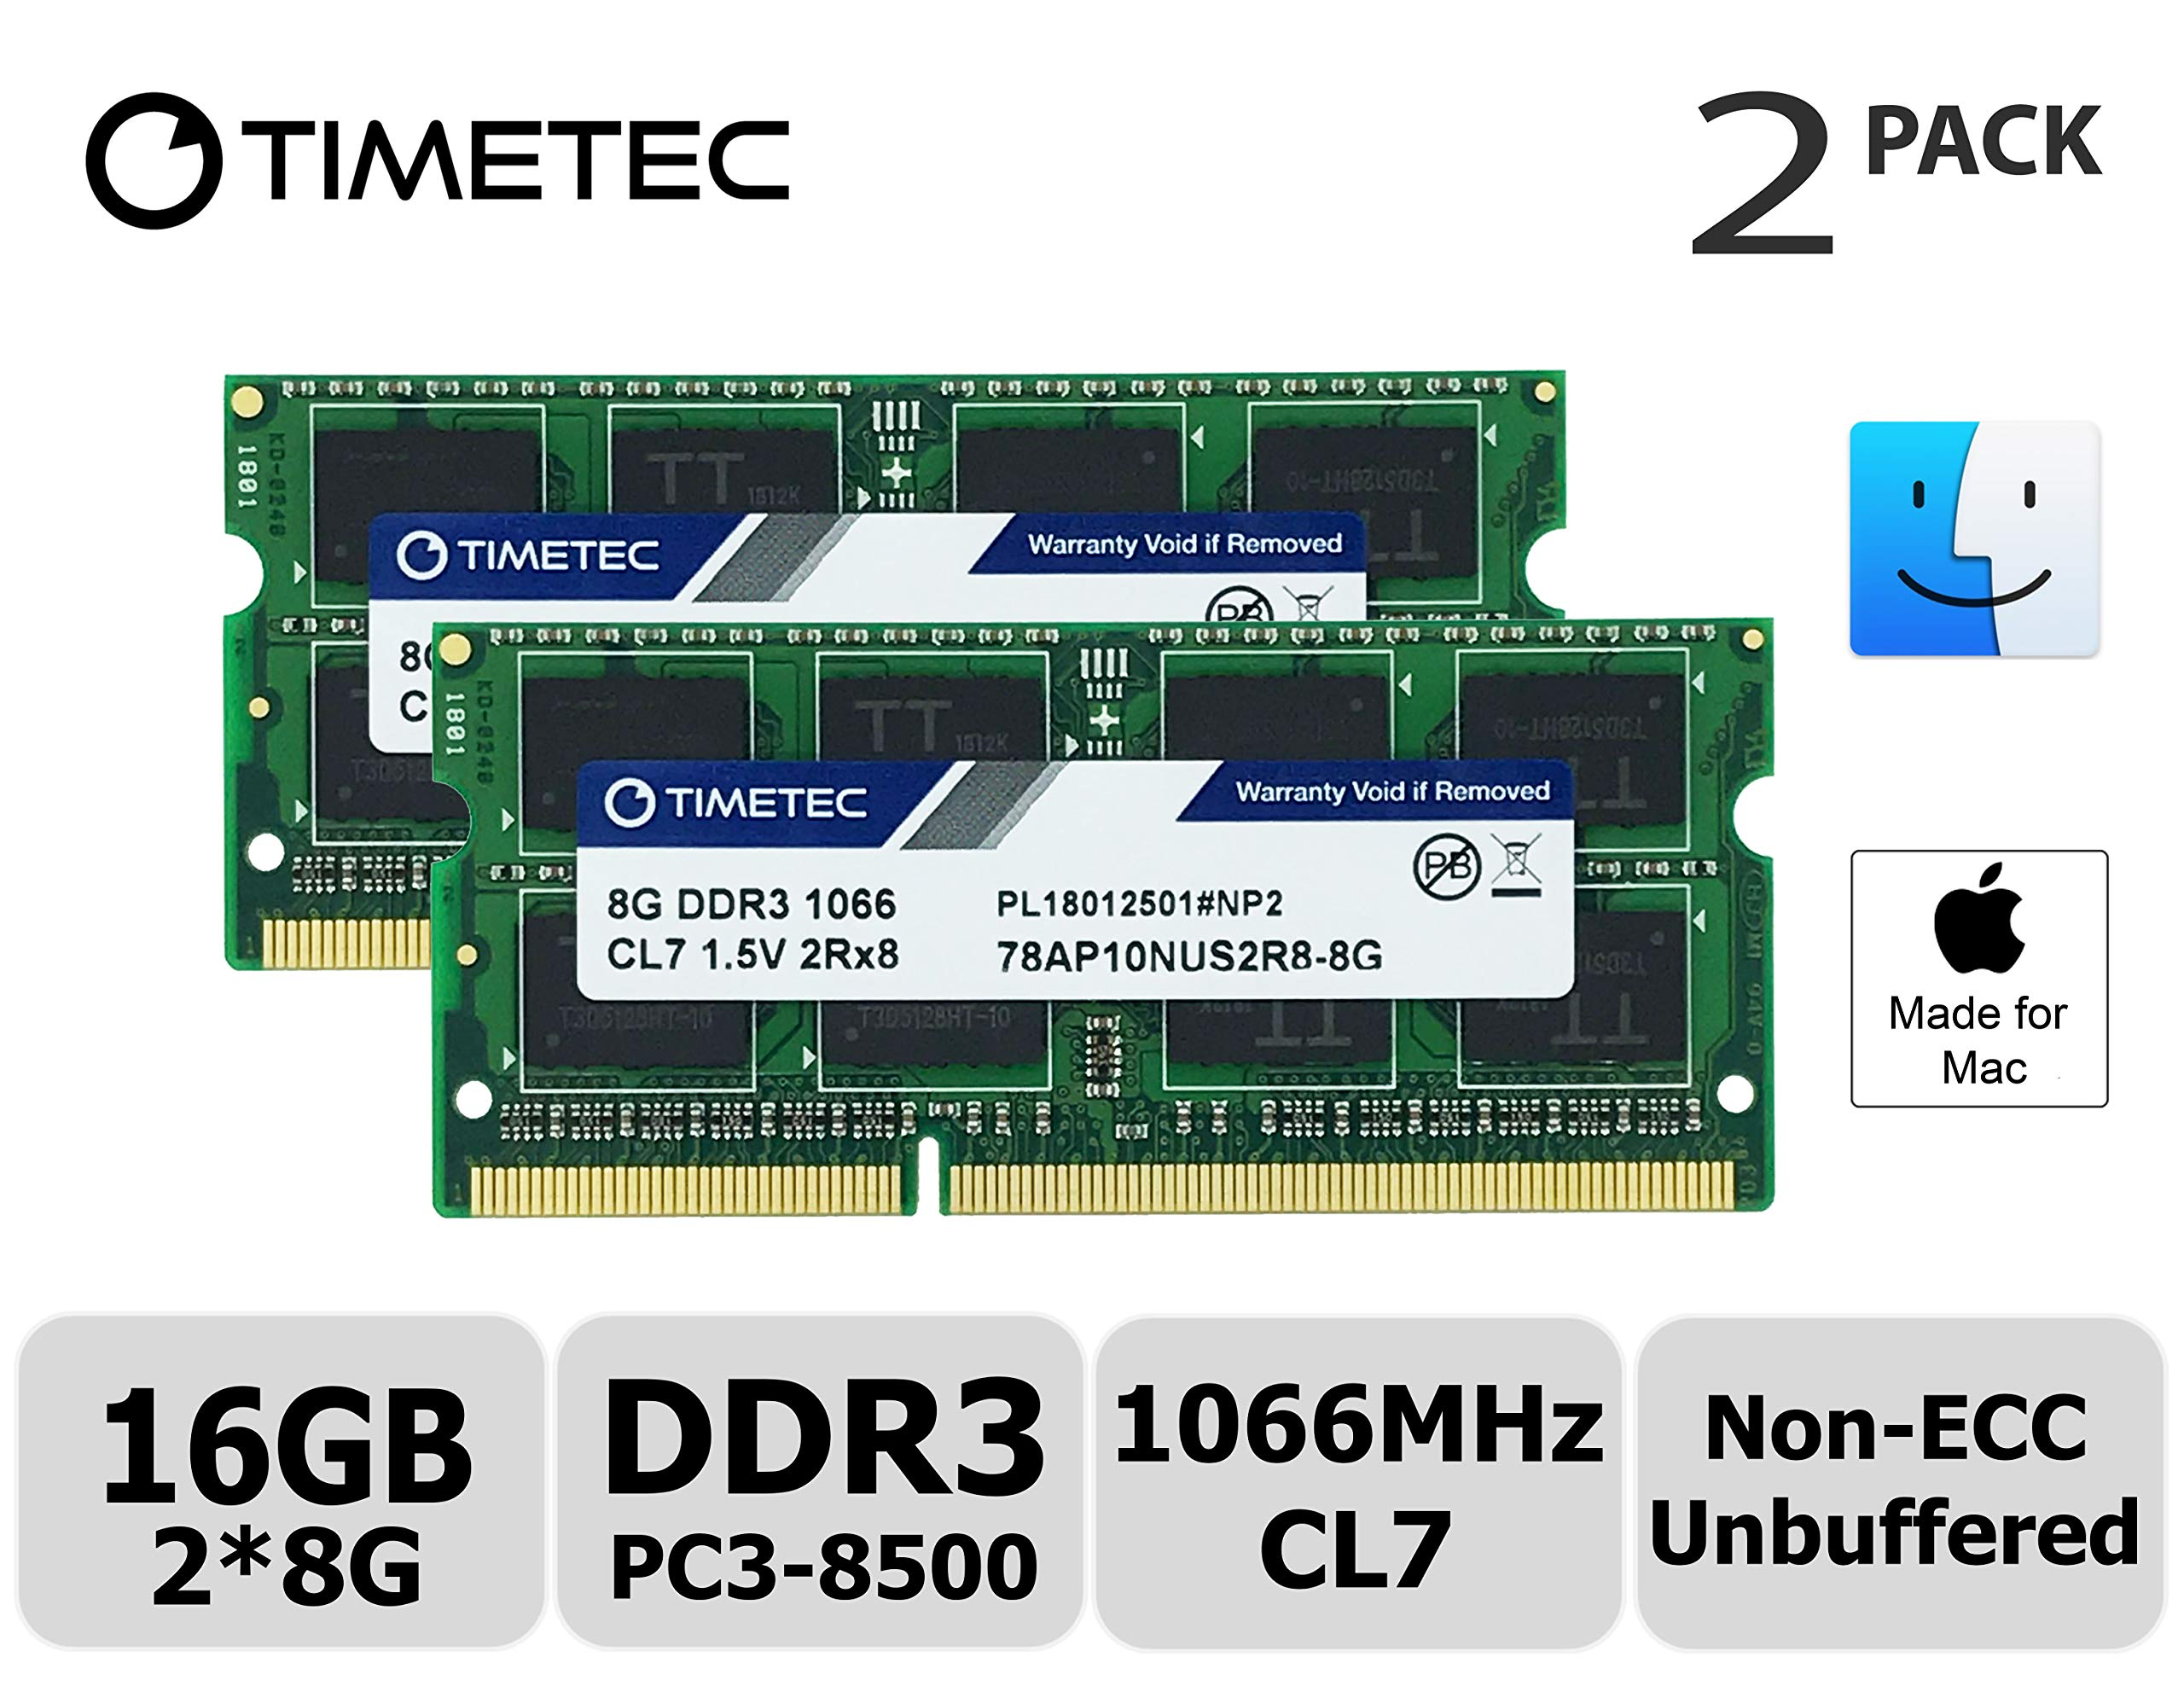 Timetec Hynix IC 16GB KIT(2x8GB) Compatible for Apple DDR3 PC3-8500 1067MHz/1066MHz Upgrade for MacBook 13'' Mid 2010, MacBook Pro 13'' Mid 2010, iMac 27''Late 2009, Mac Mini Mid 2010(16GB KIT(2x8GB))